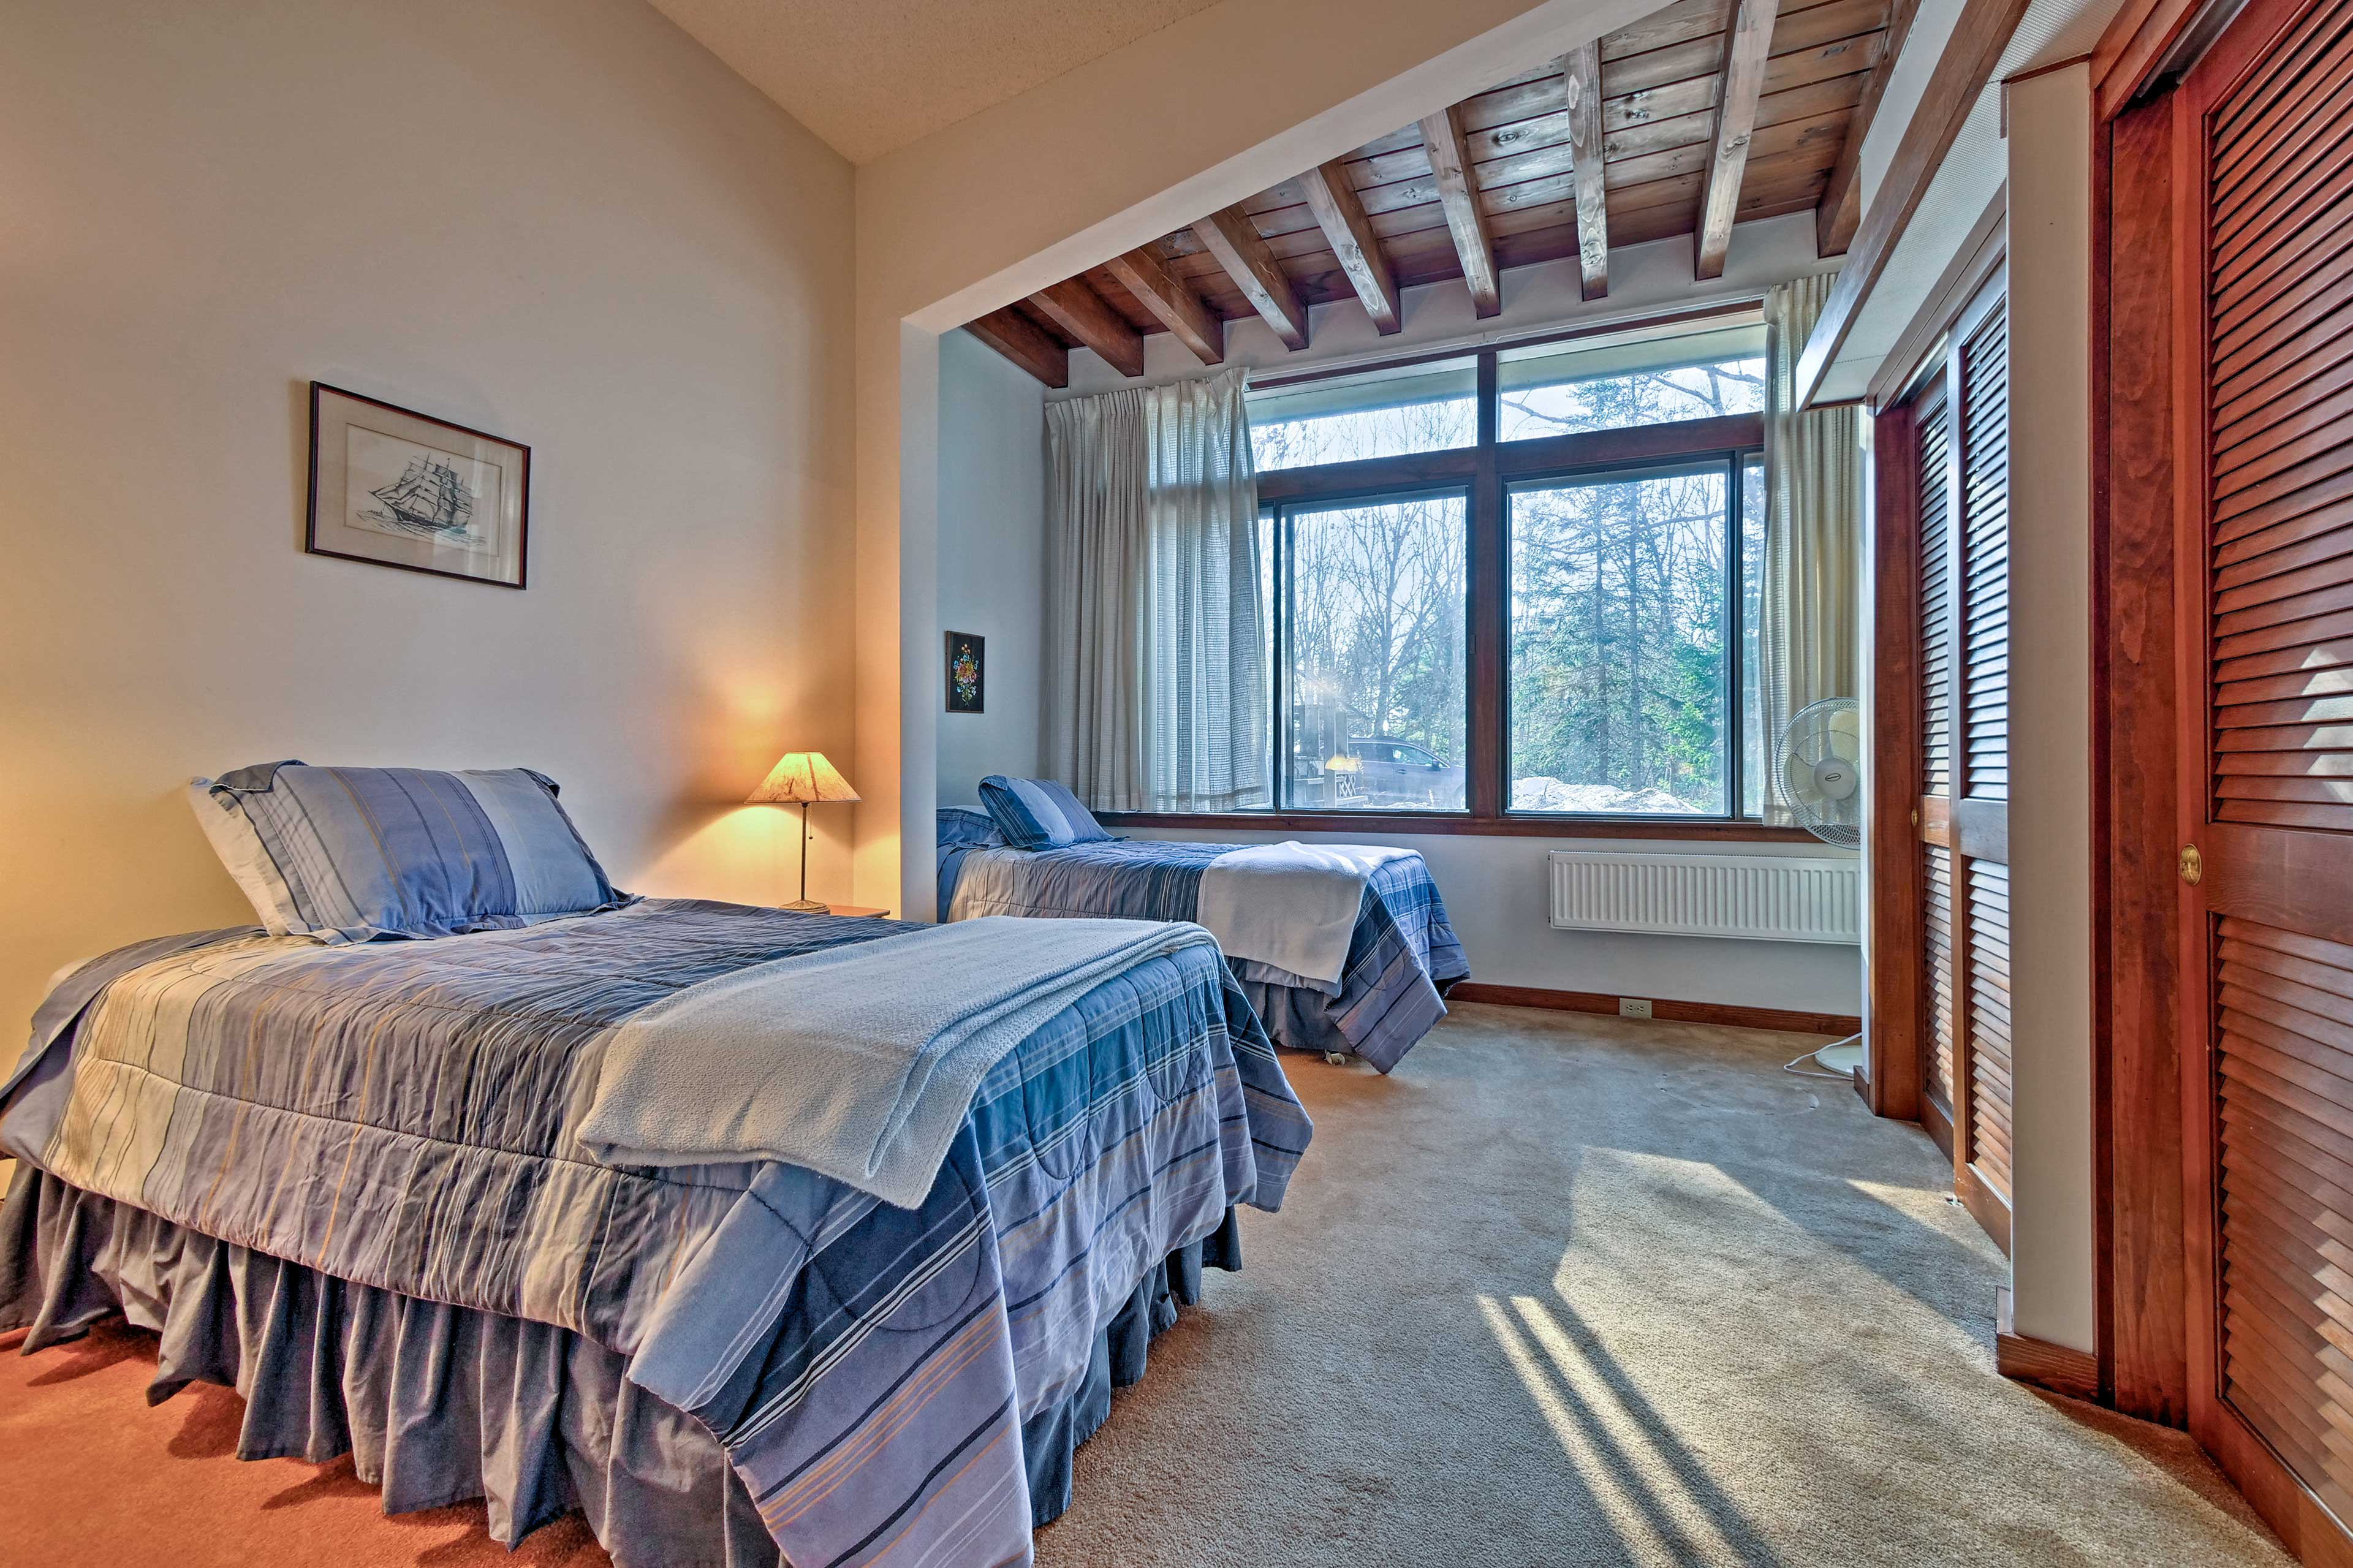 Perfect for siblings, this room houses 2 twin beds.